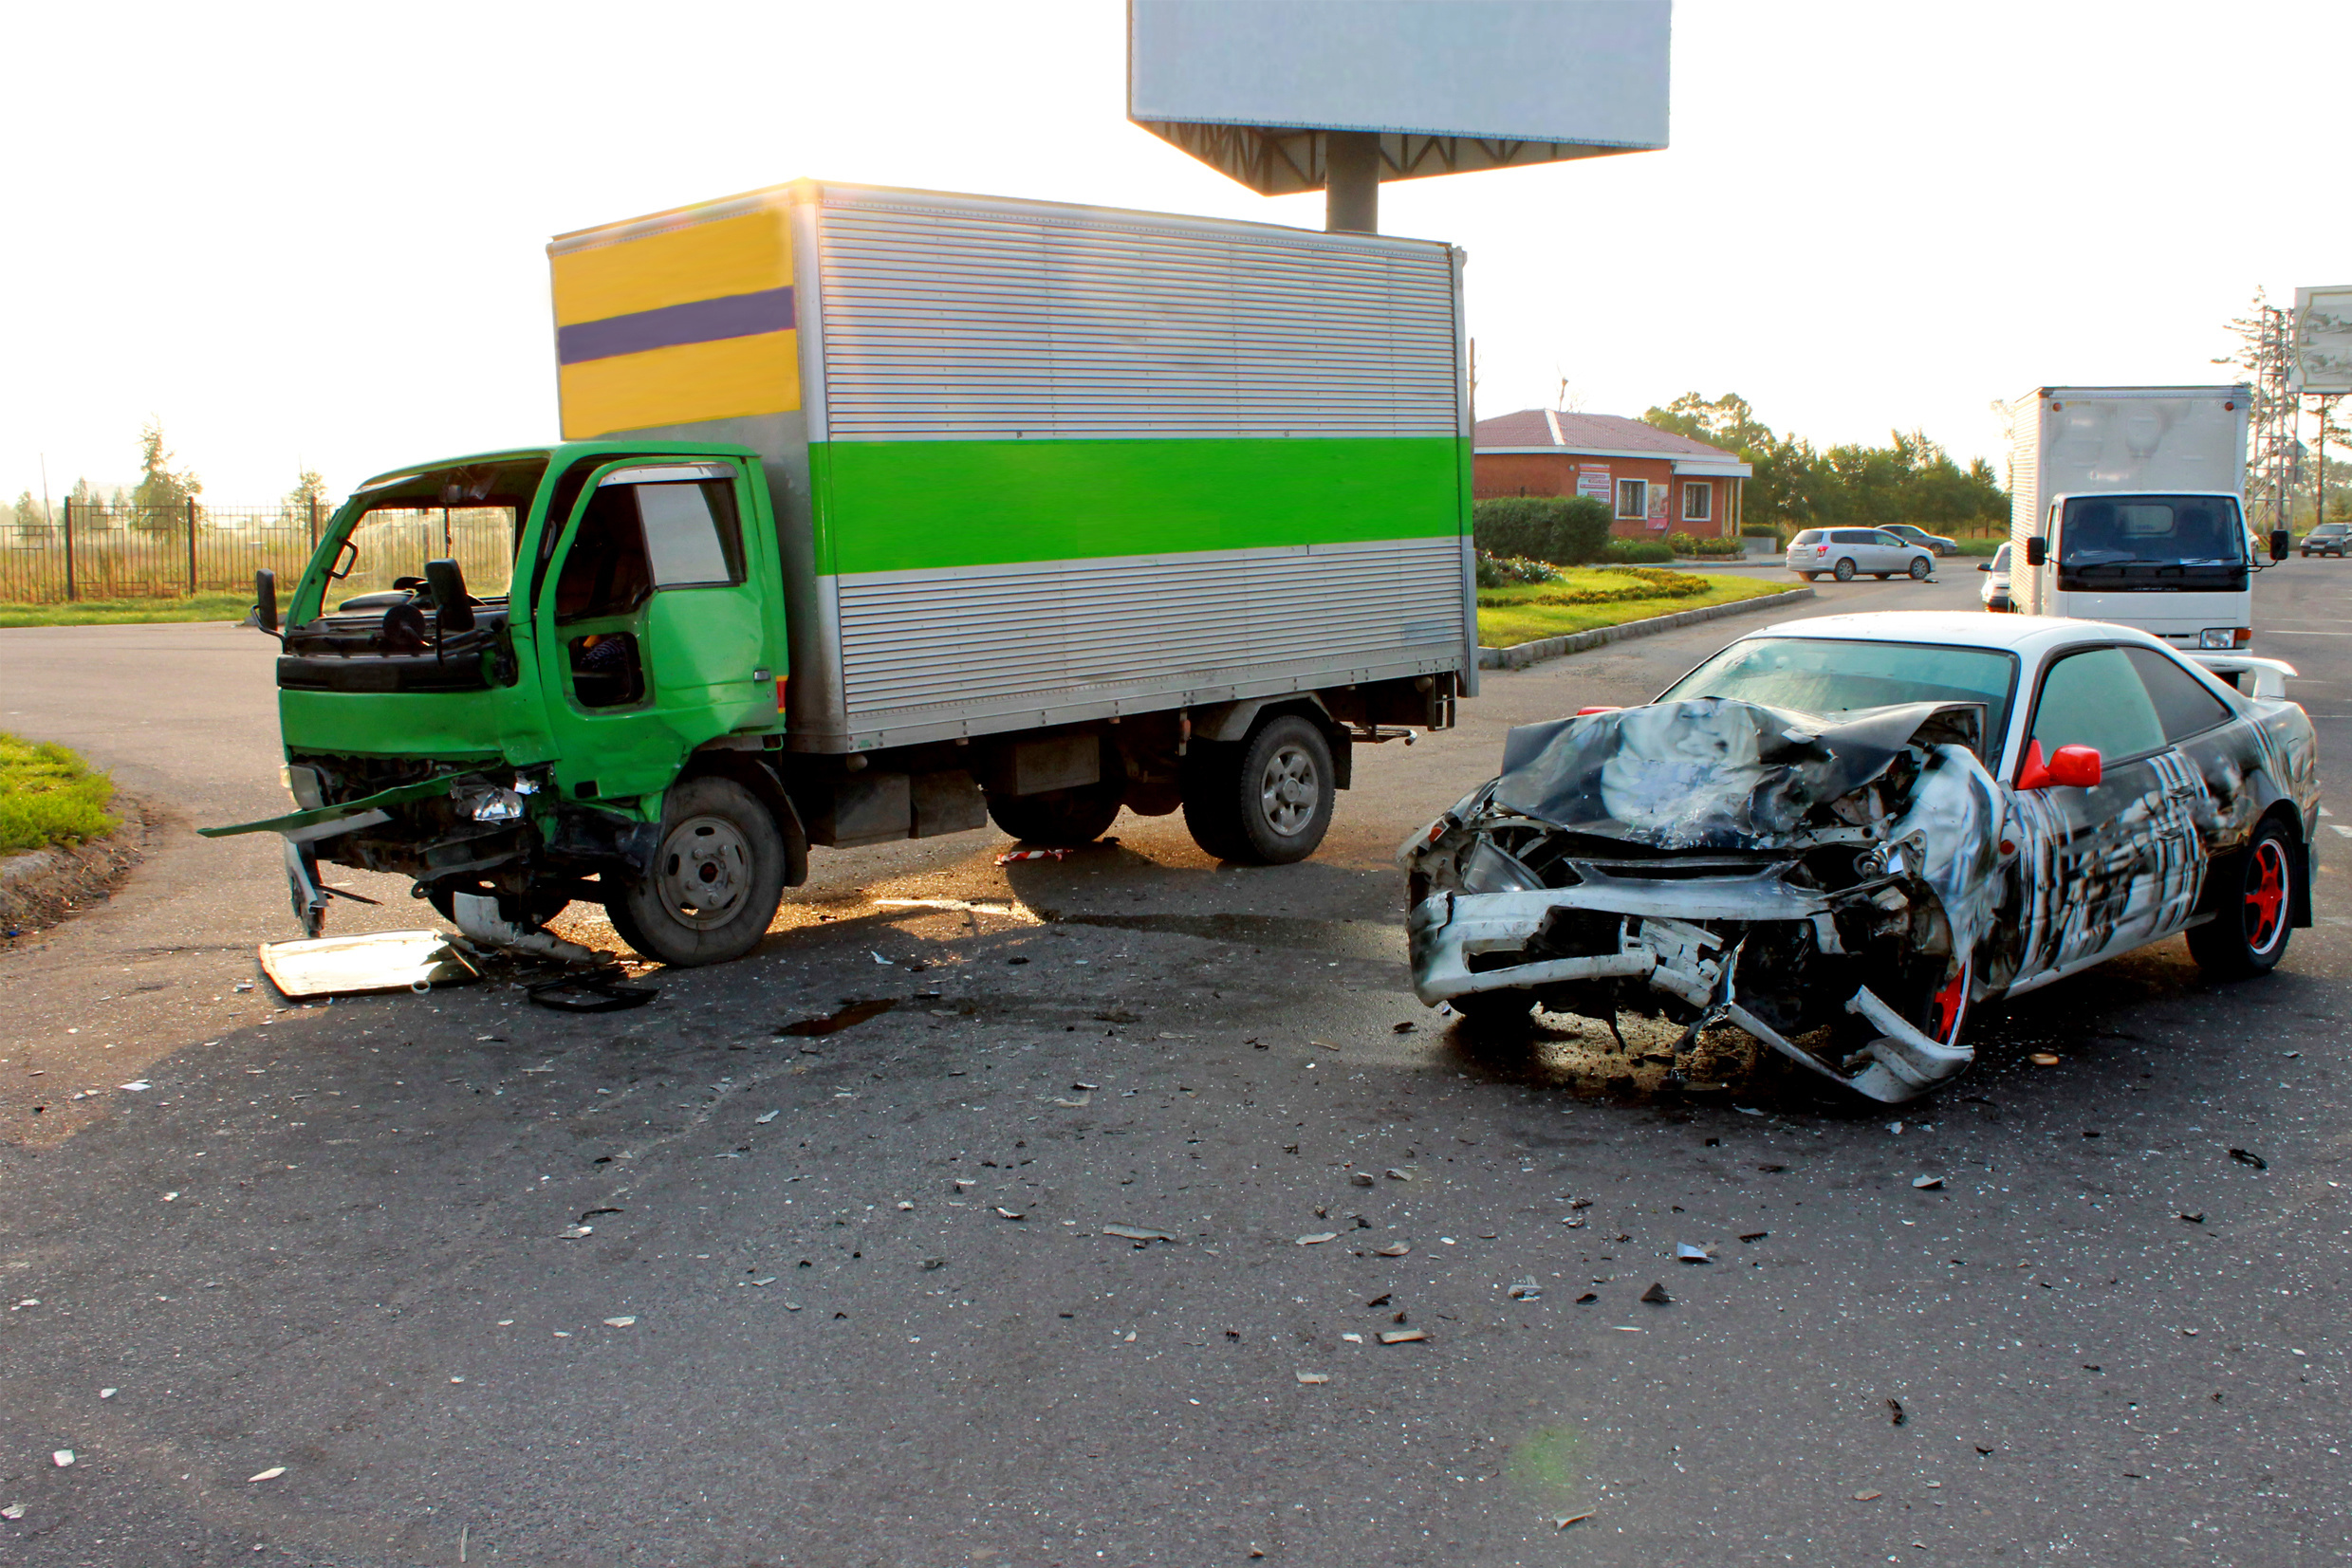 Traffic accident, the car at high speed collided with a small truck.